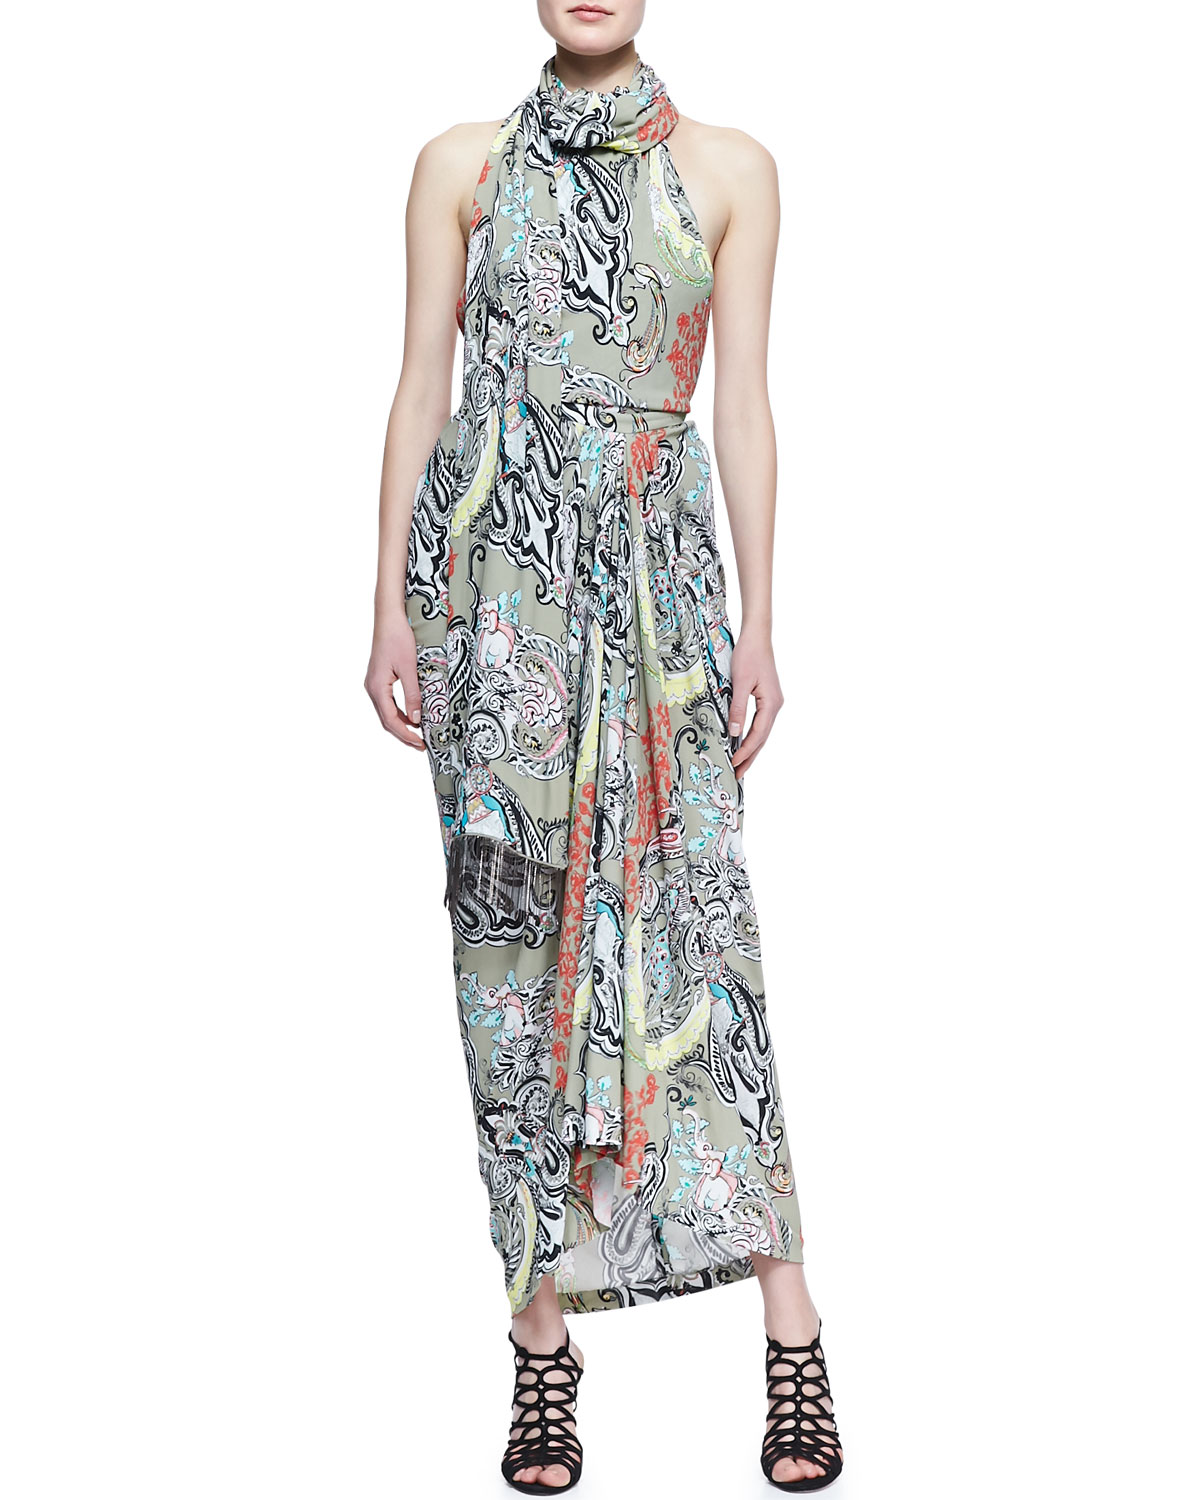 Womens Scarf Neck Menagerie Printed Long Dress   Etro   Gray (38/4)